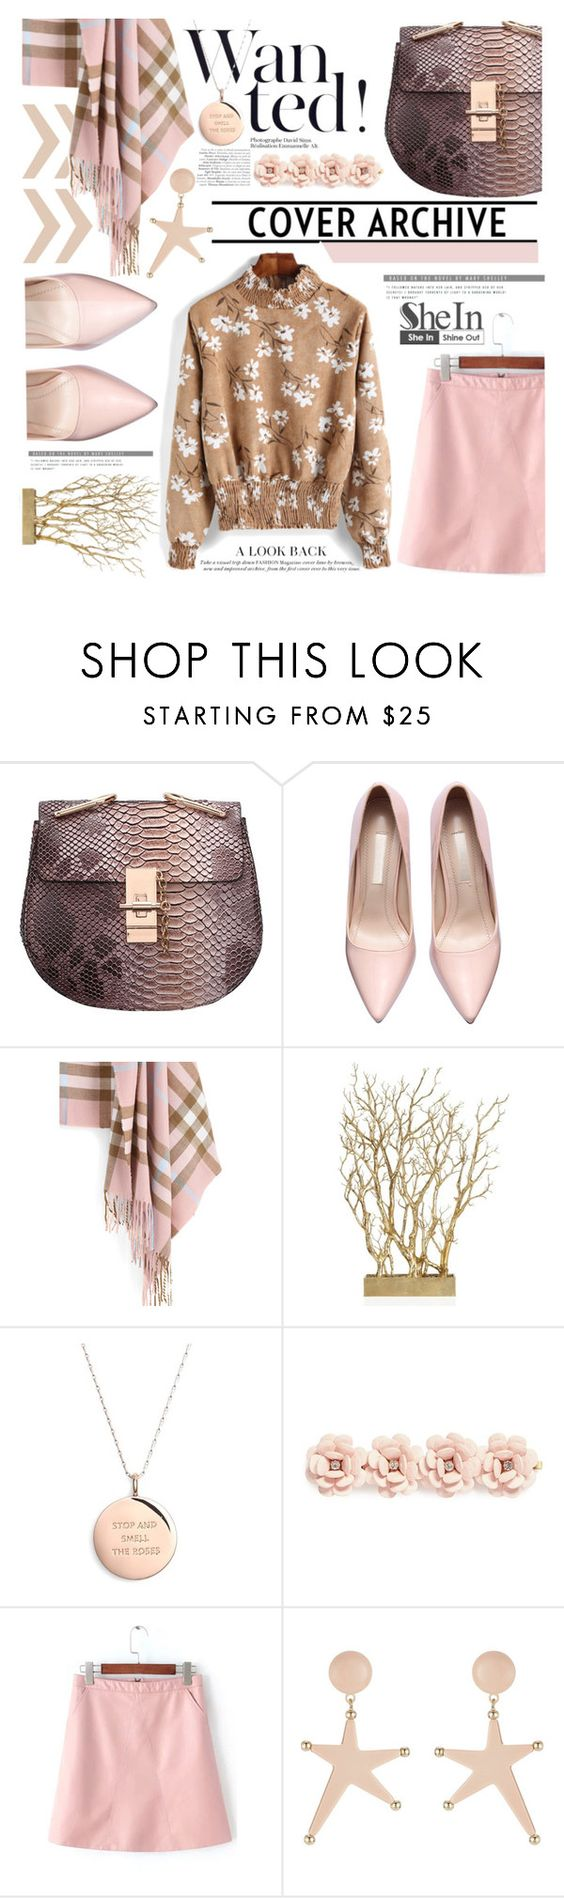 """SheIn Pink Scarf"" by maranella ❤ liked on Polyvore featuring Kate Spade, J.Crew, Marni, women's clothing, women, female, woman, misses, juniors and Pink"